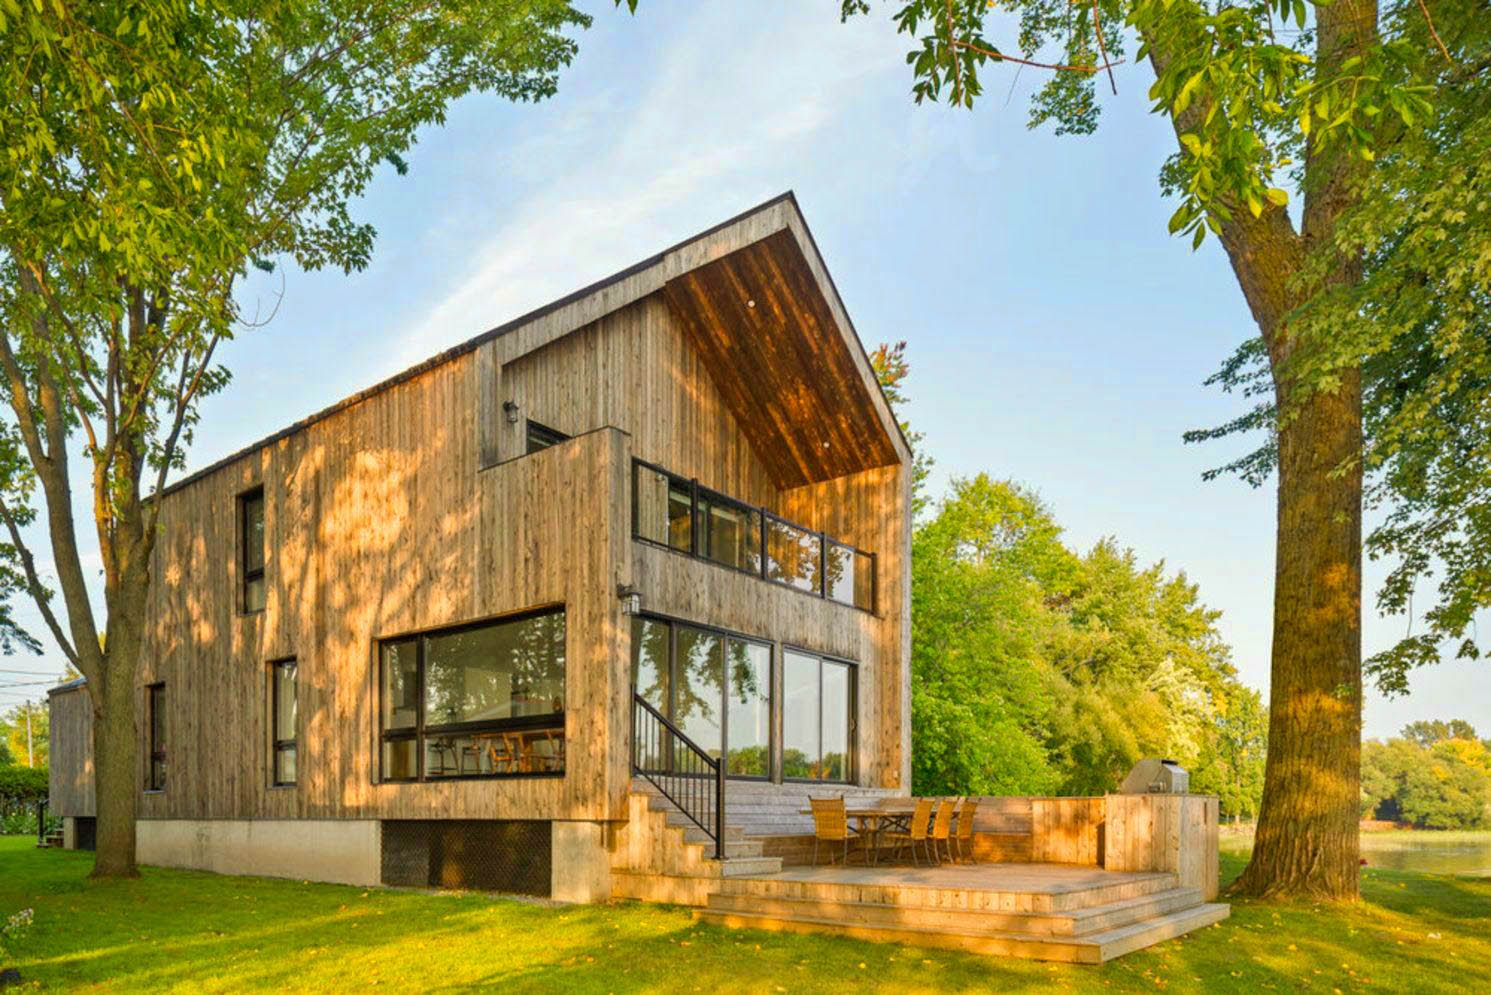 https://elonahome.com/wp-content/uploads/2020/06/Impresive-wood-cladd-exterior-to-show-Saint-Placide-Chalet-with-extensive-concept-that-grabs-more-warmth-welcome-for-the-family-2.jpg